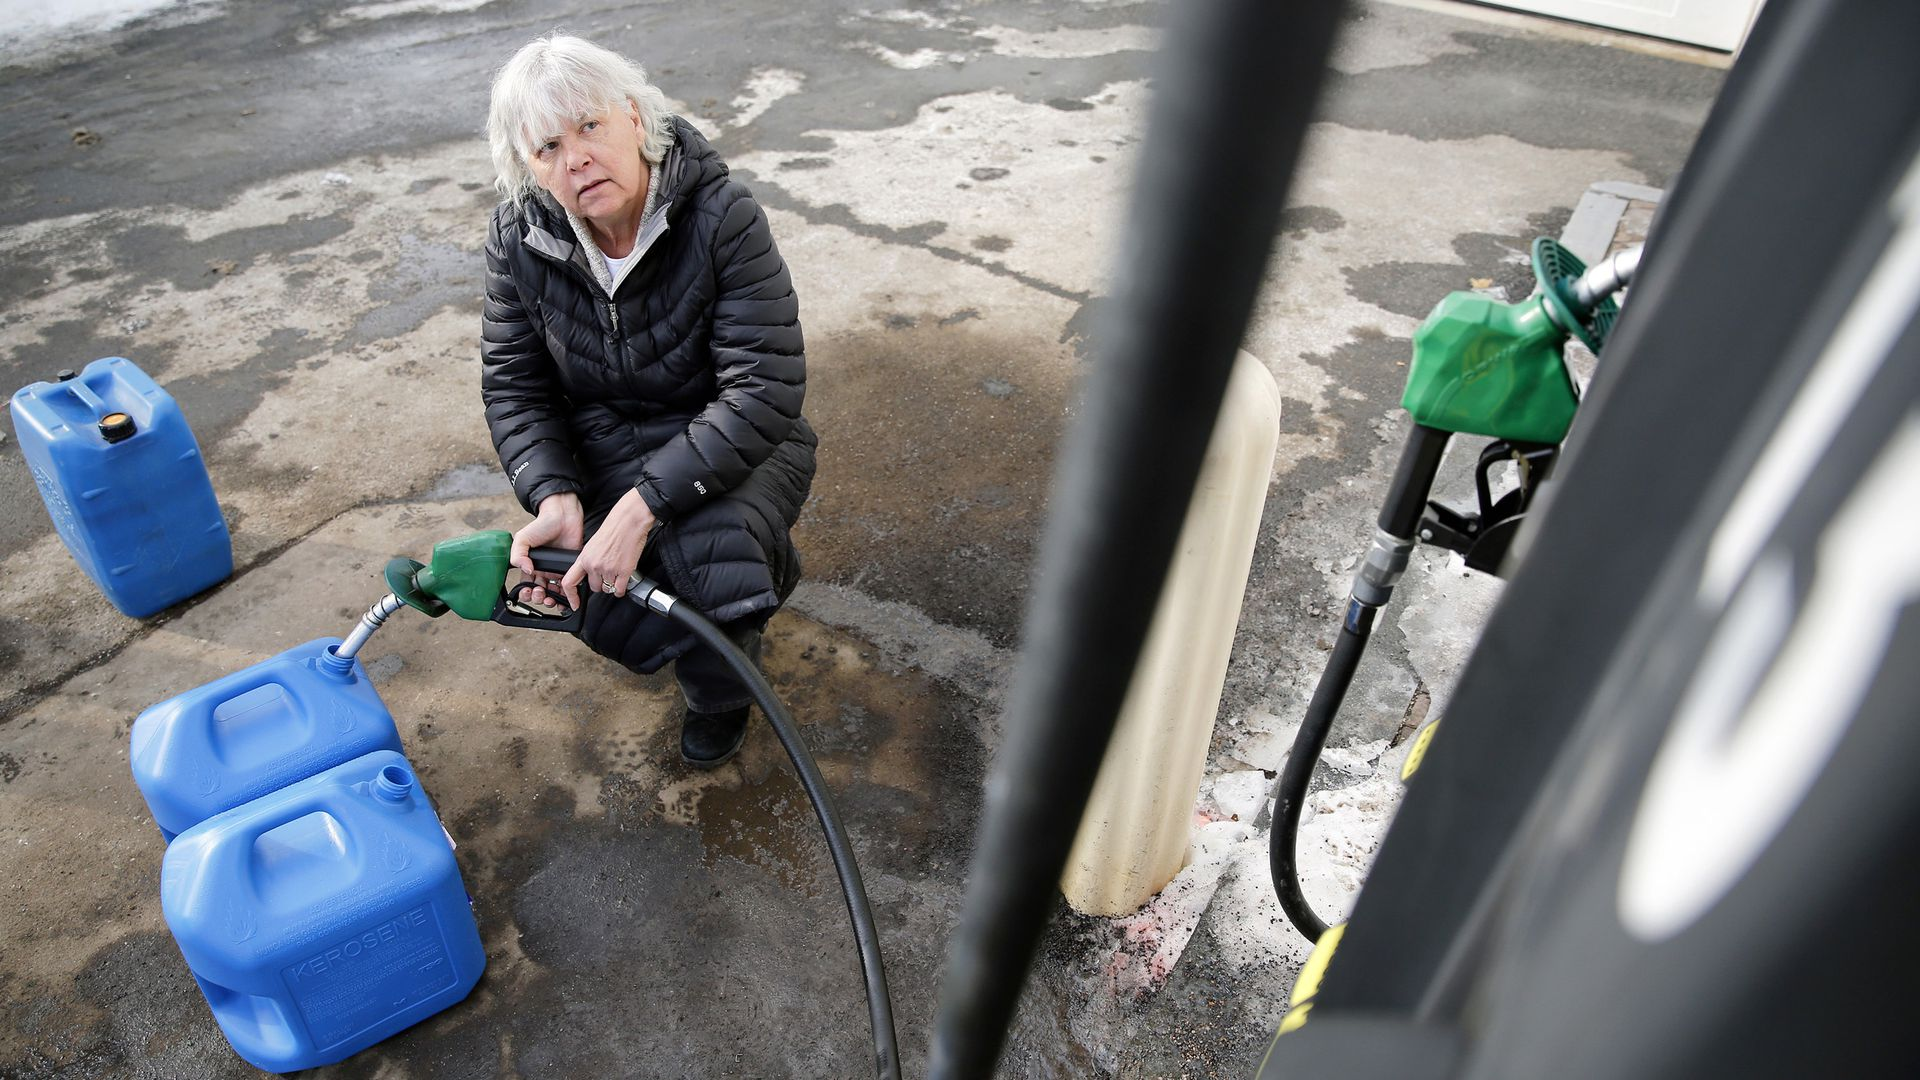 Lady with white hair crouches down filling three blue gasoline jugs with gasoline.